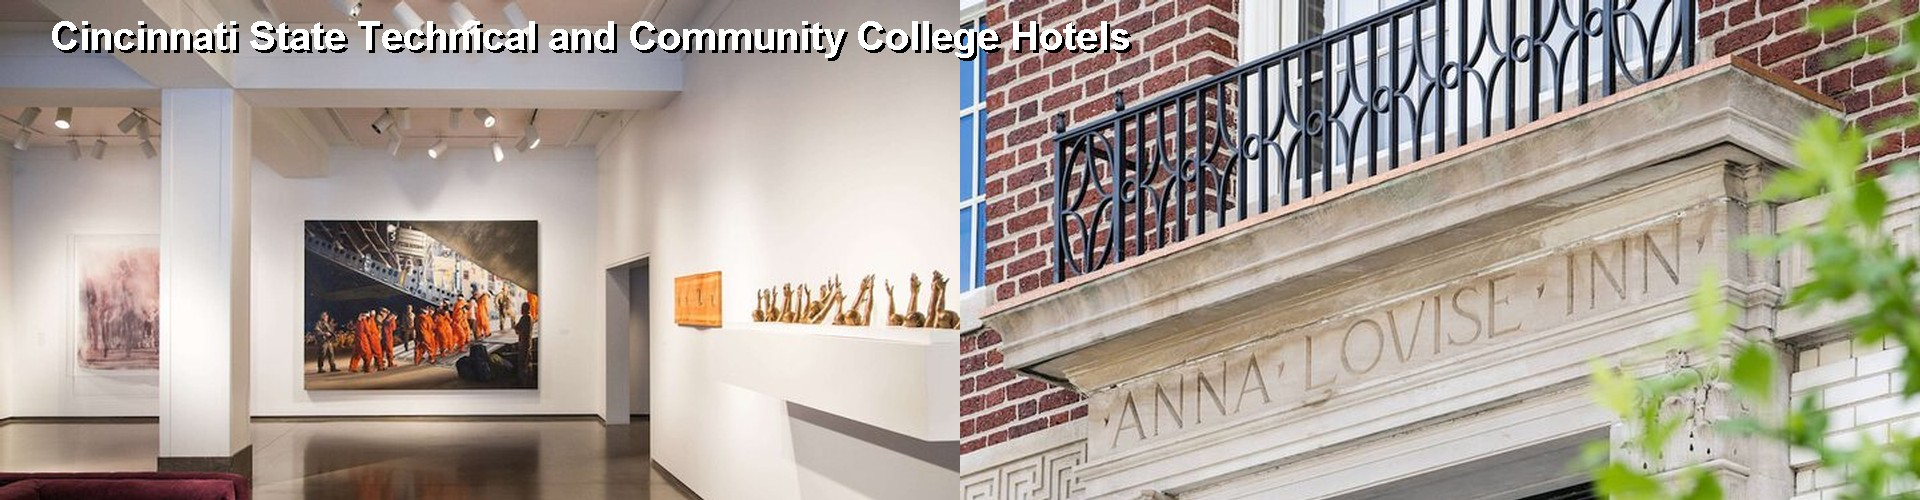 5 Best Hotels near Cincinnati State Technical and Community College